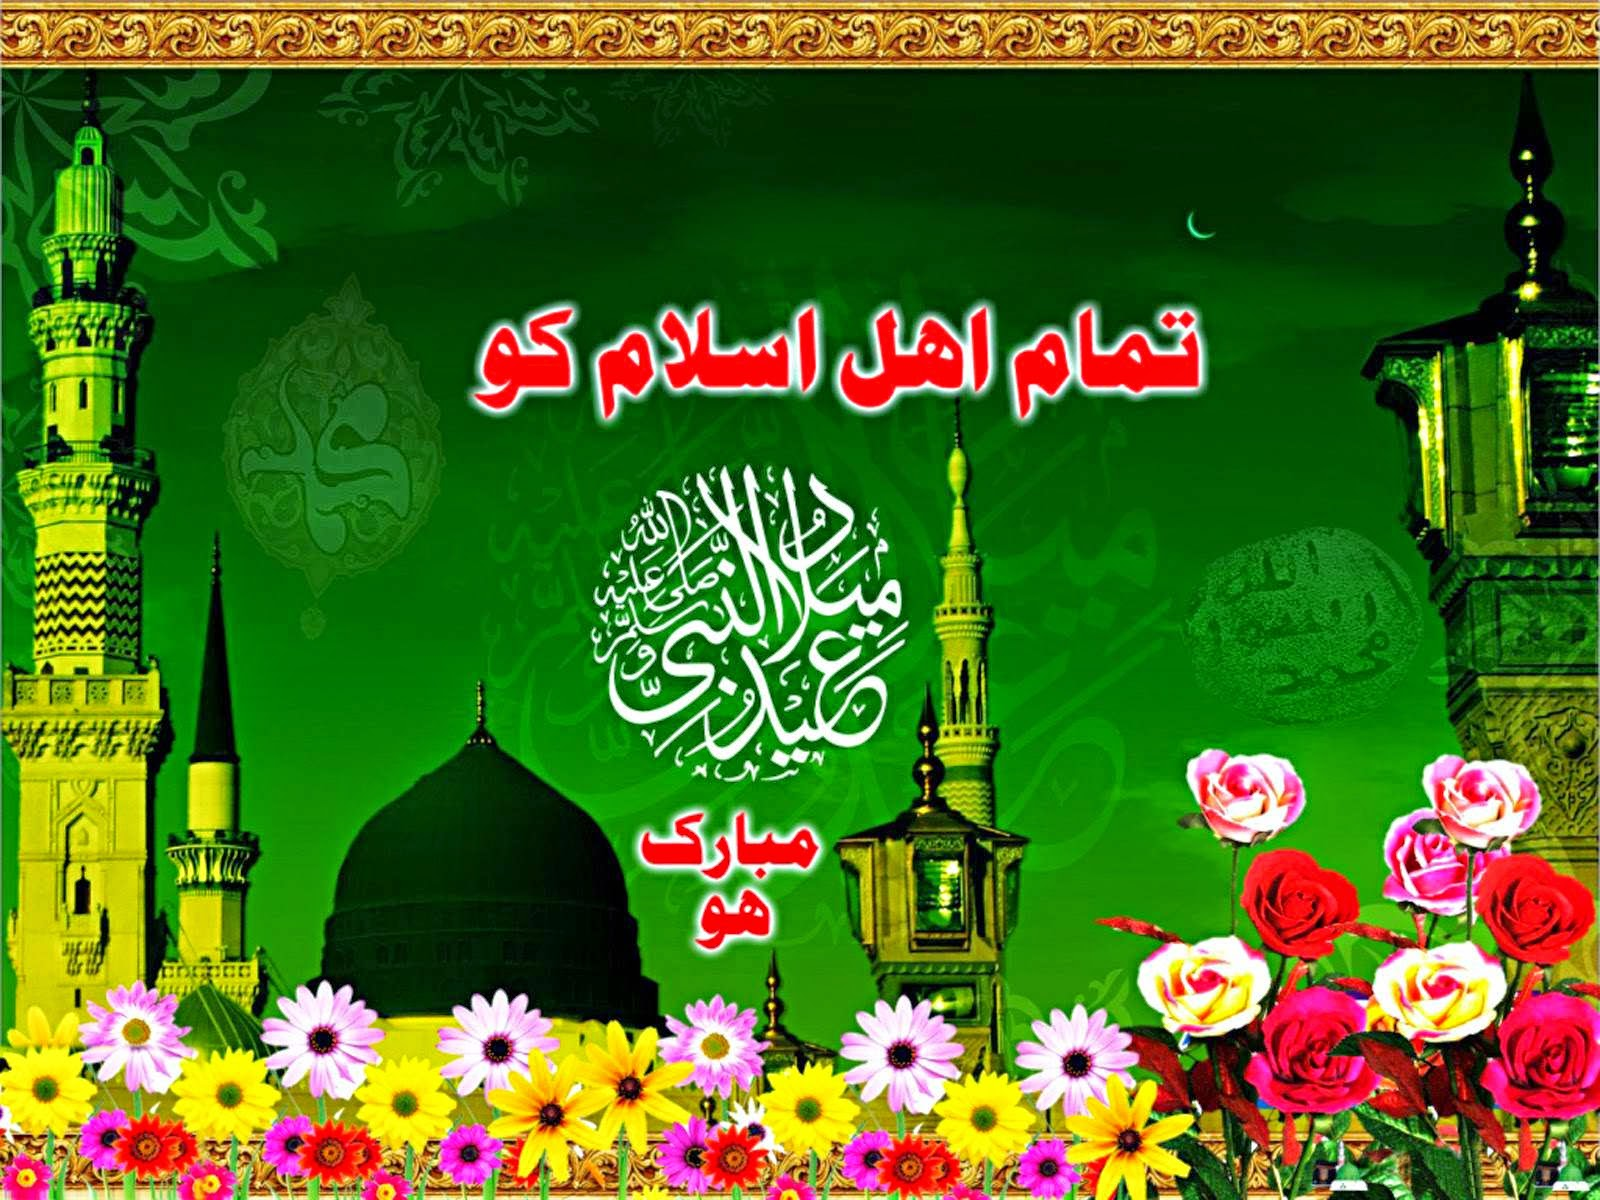 Wallpaper download eid milad un nabi - Eid Milad Un Nabi Mubarak 2016 Hd Wallpaper Free Download